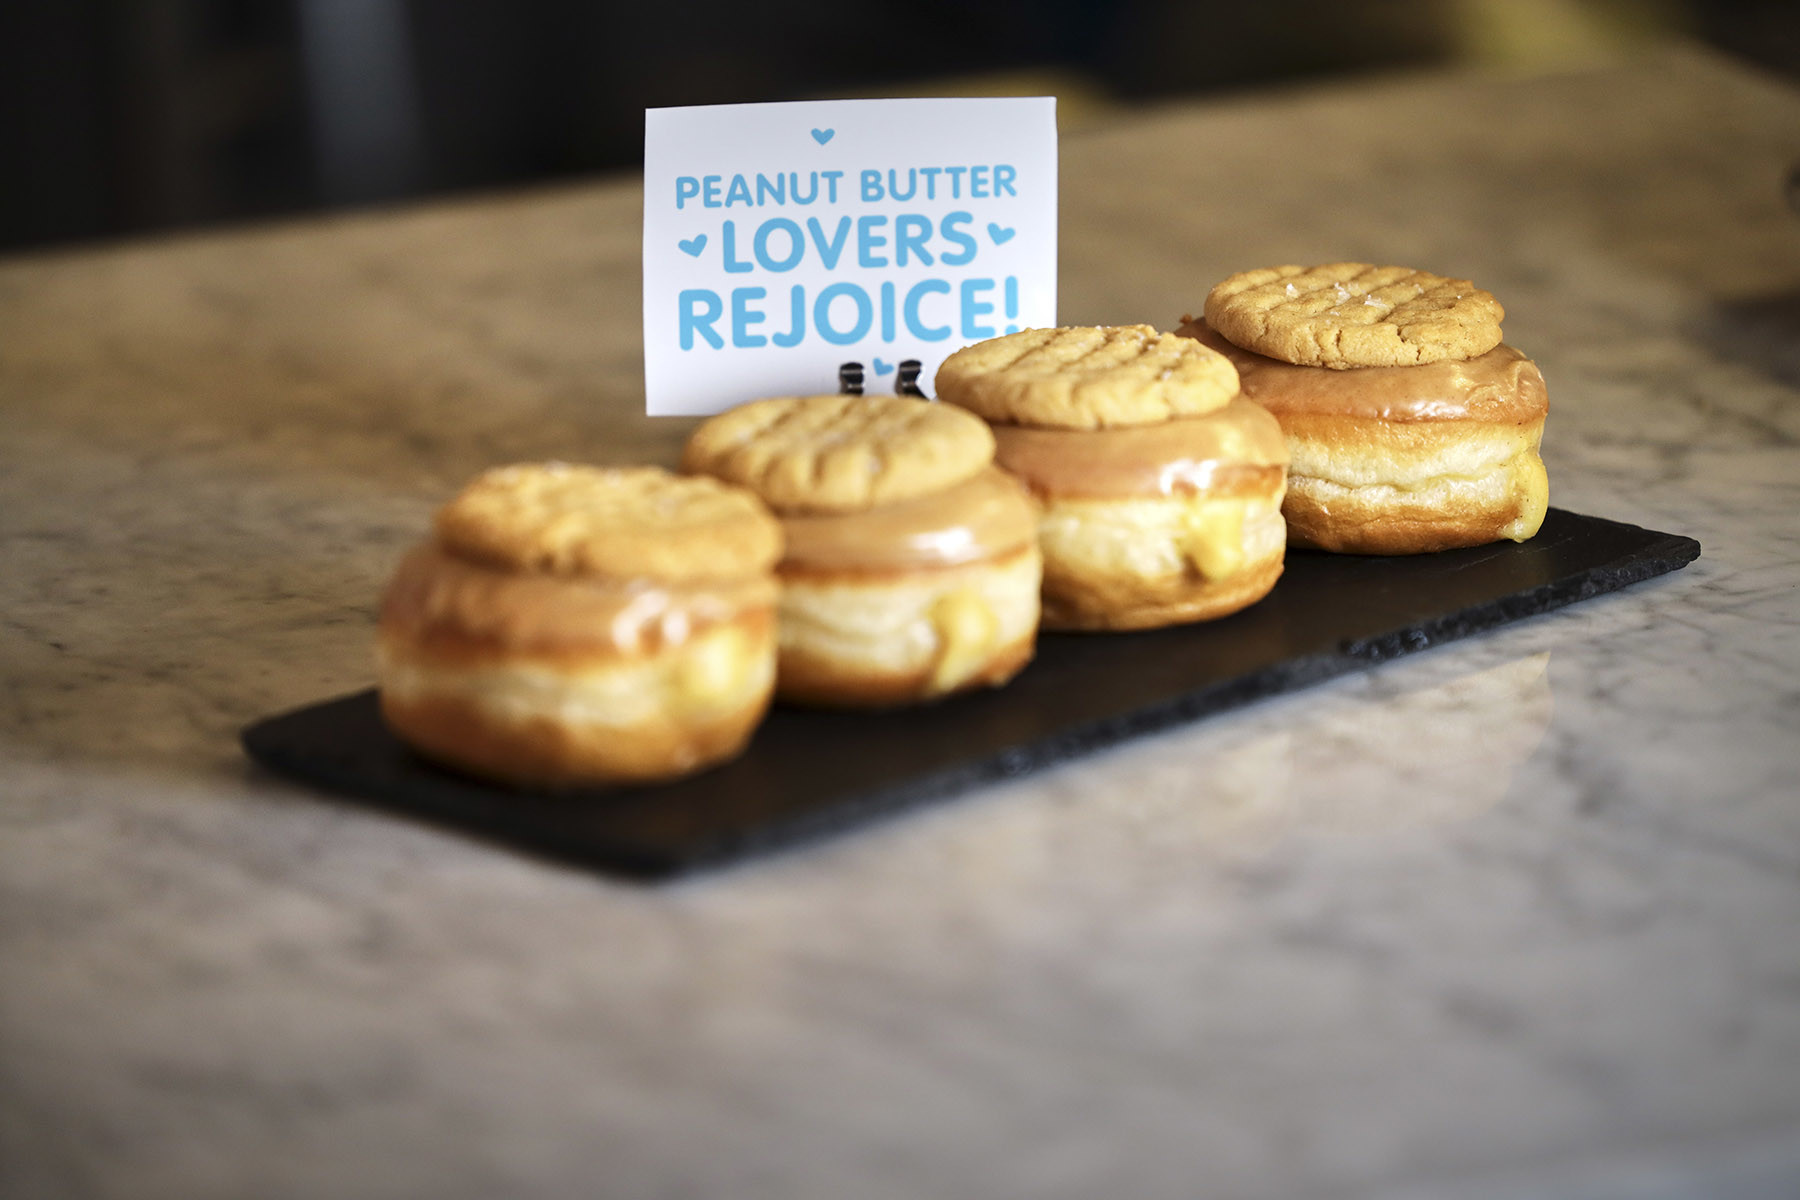 Mother of all peanut butter doughnuts coming to NYC shop for National Peanut Butter Lover's Day